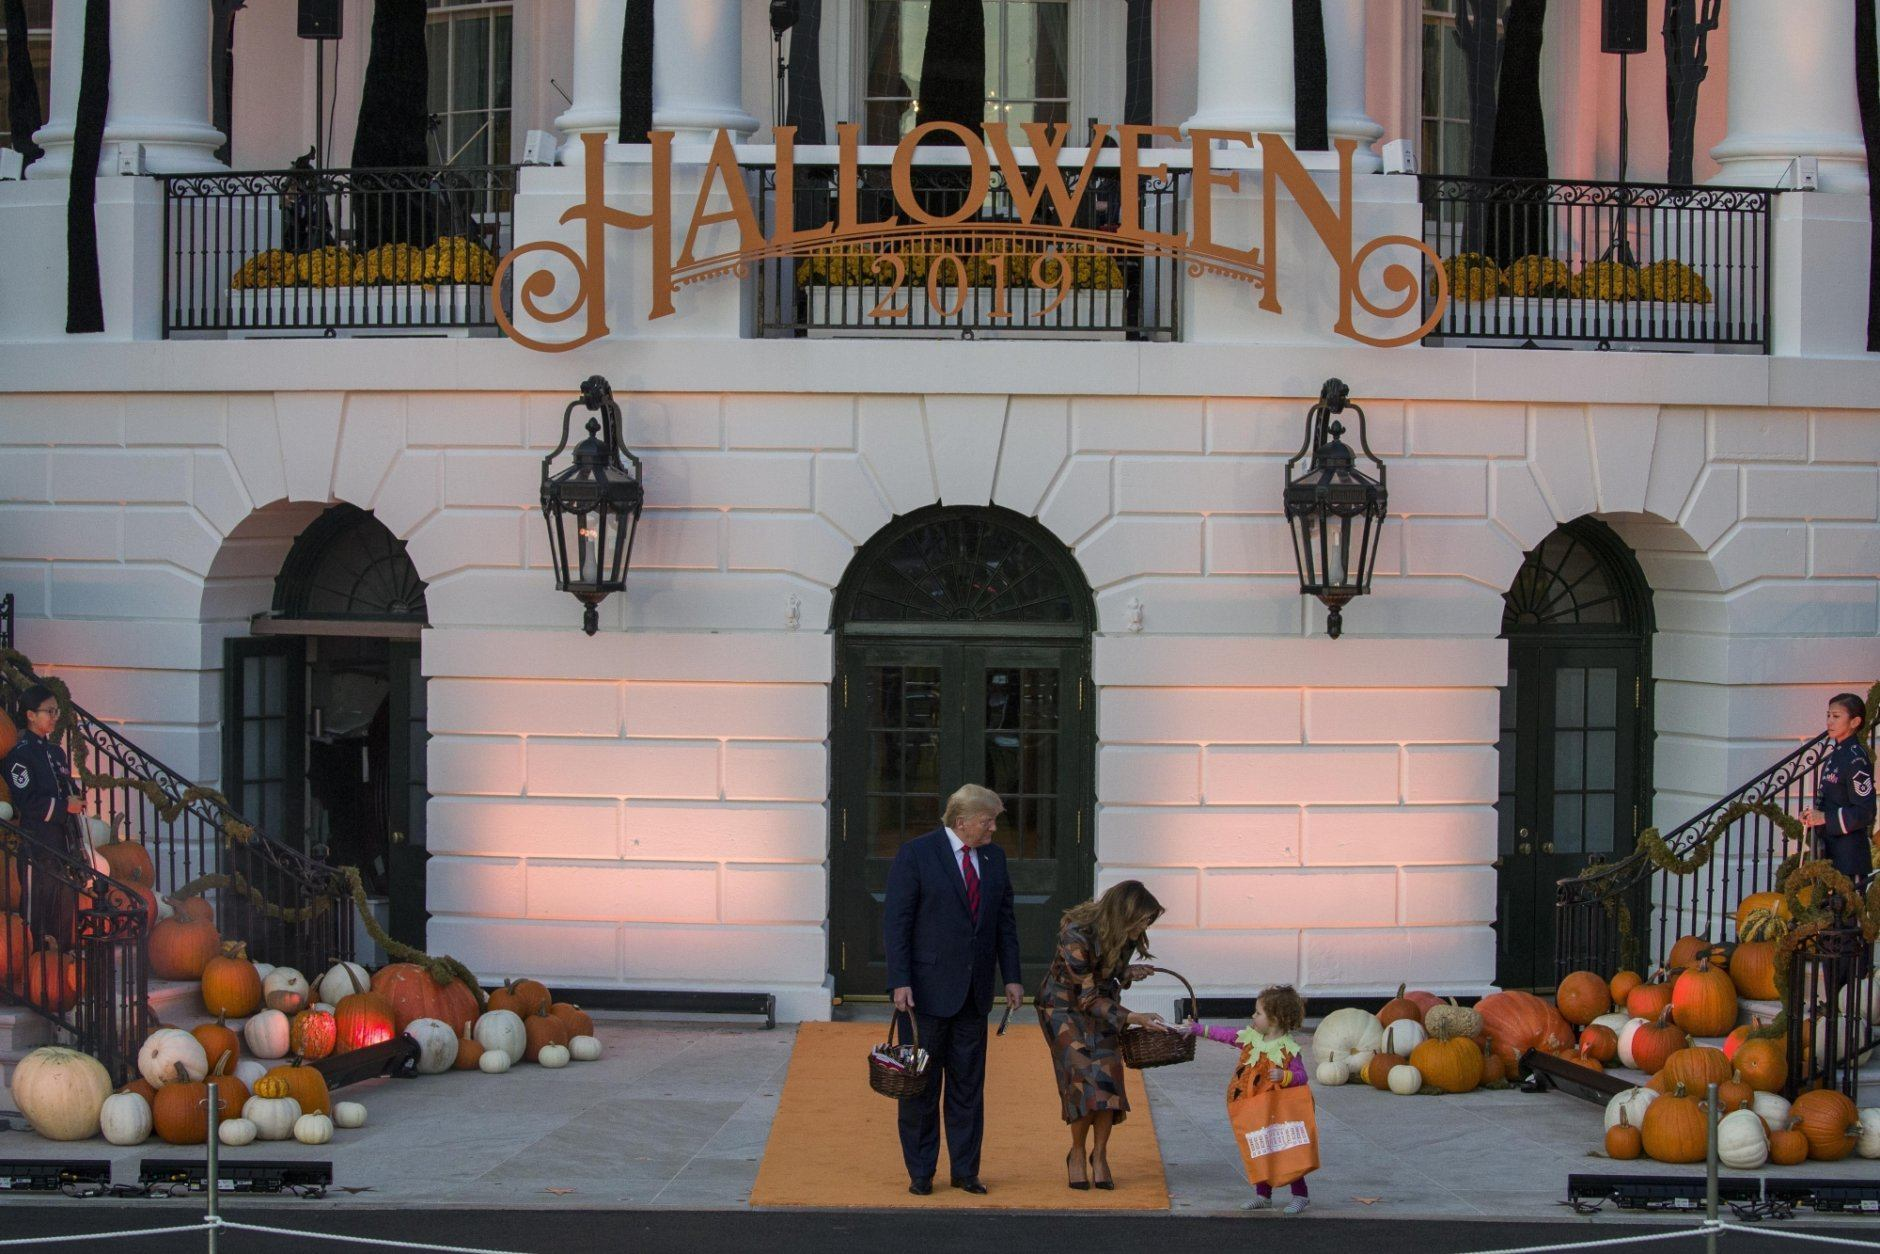 Trumps hand out Halloween candy, greet kids at White House